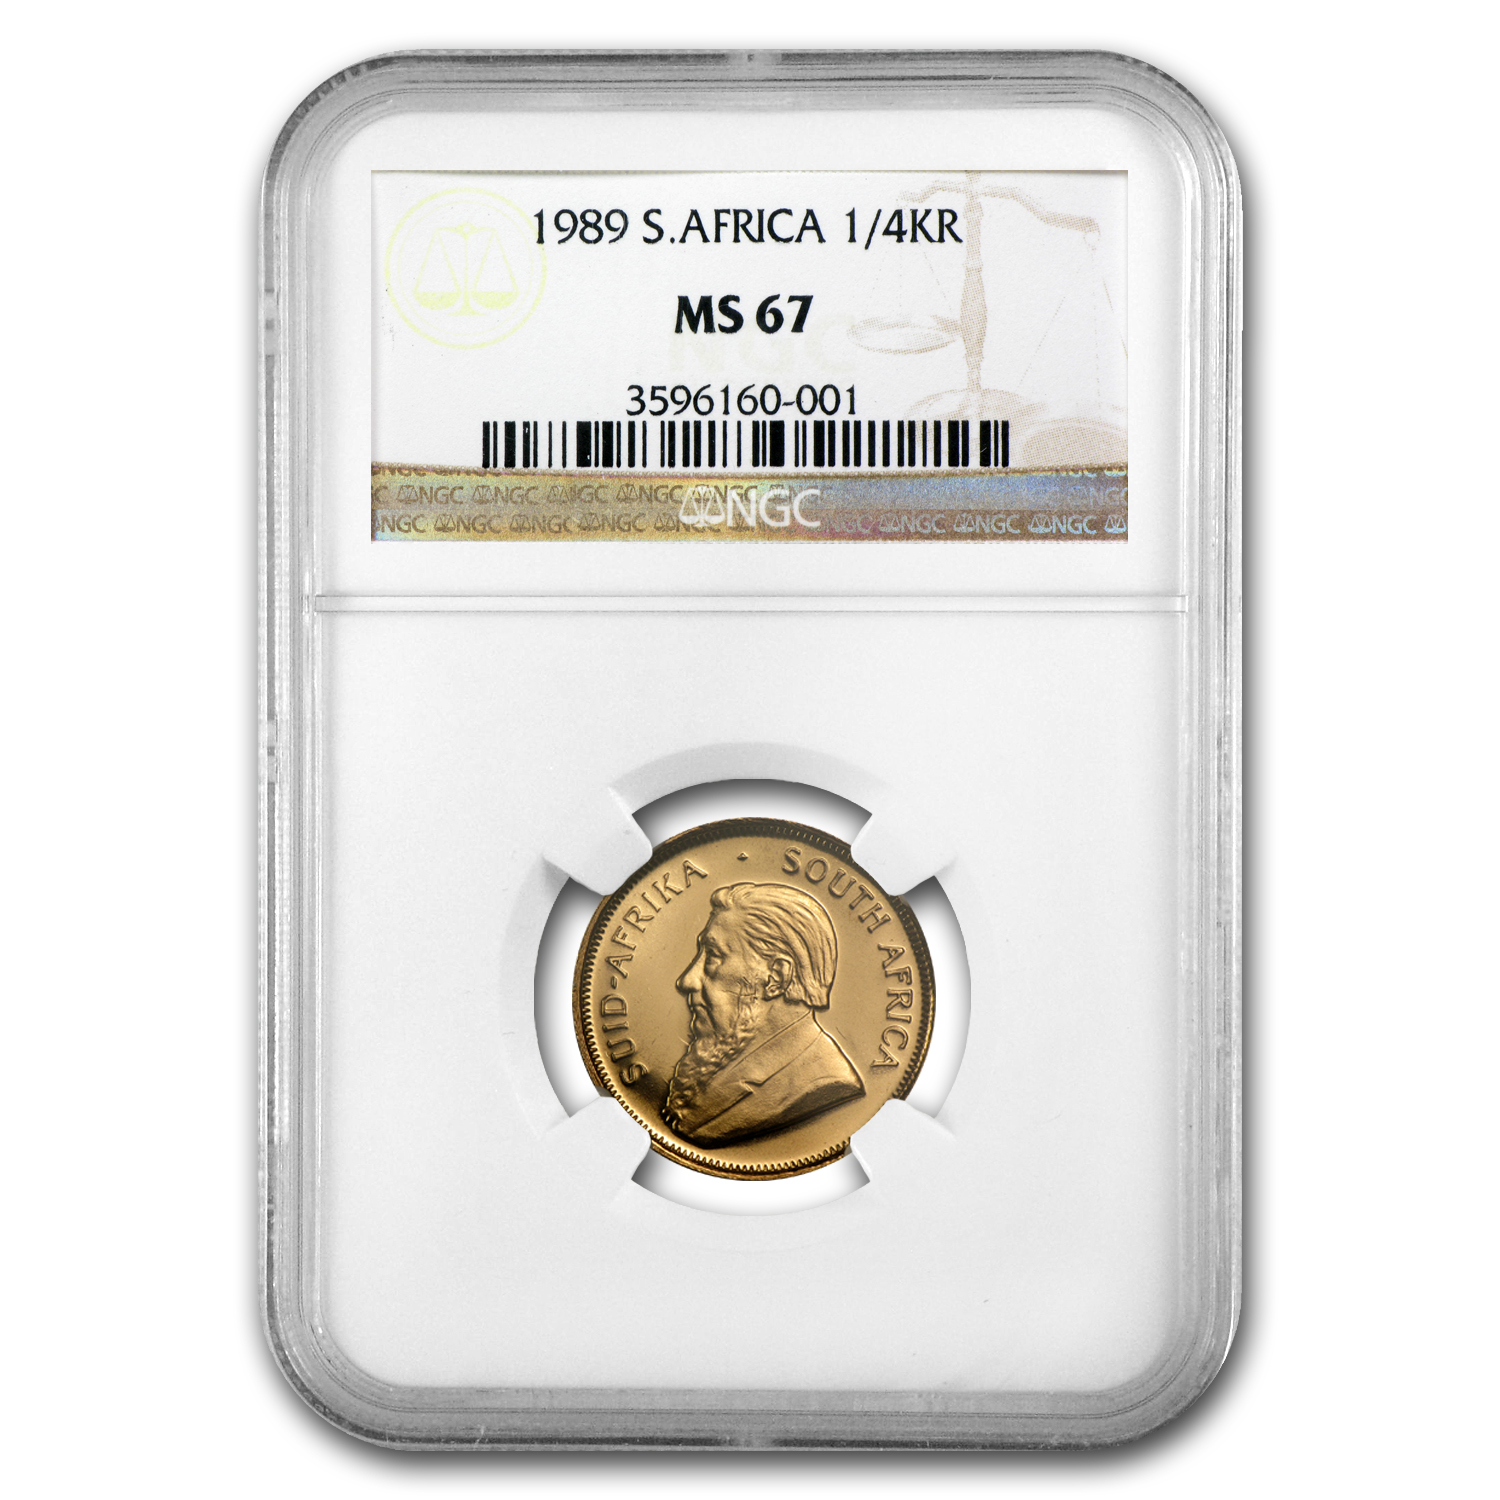 1989 1/4 oz Gold South African Krugerrand MS-67 NGC